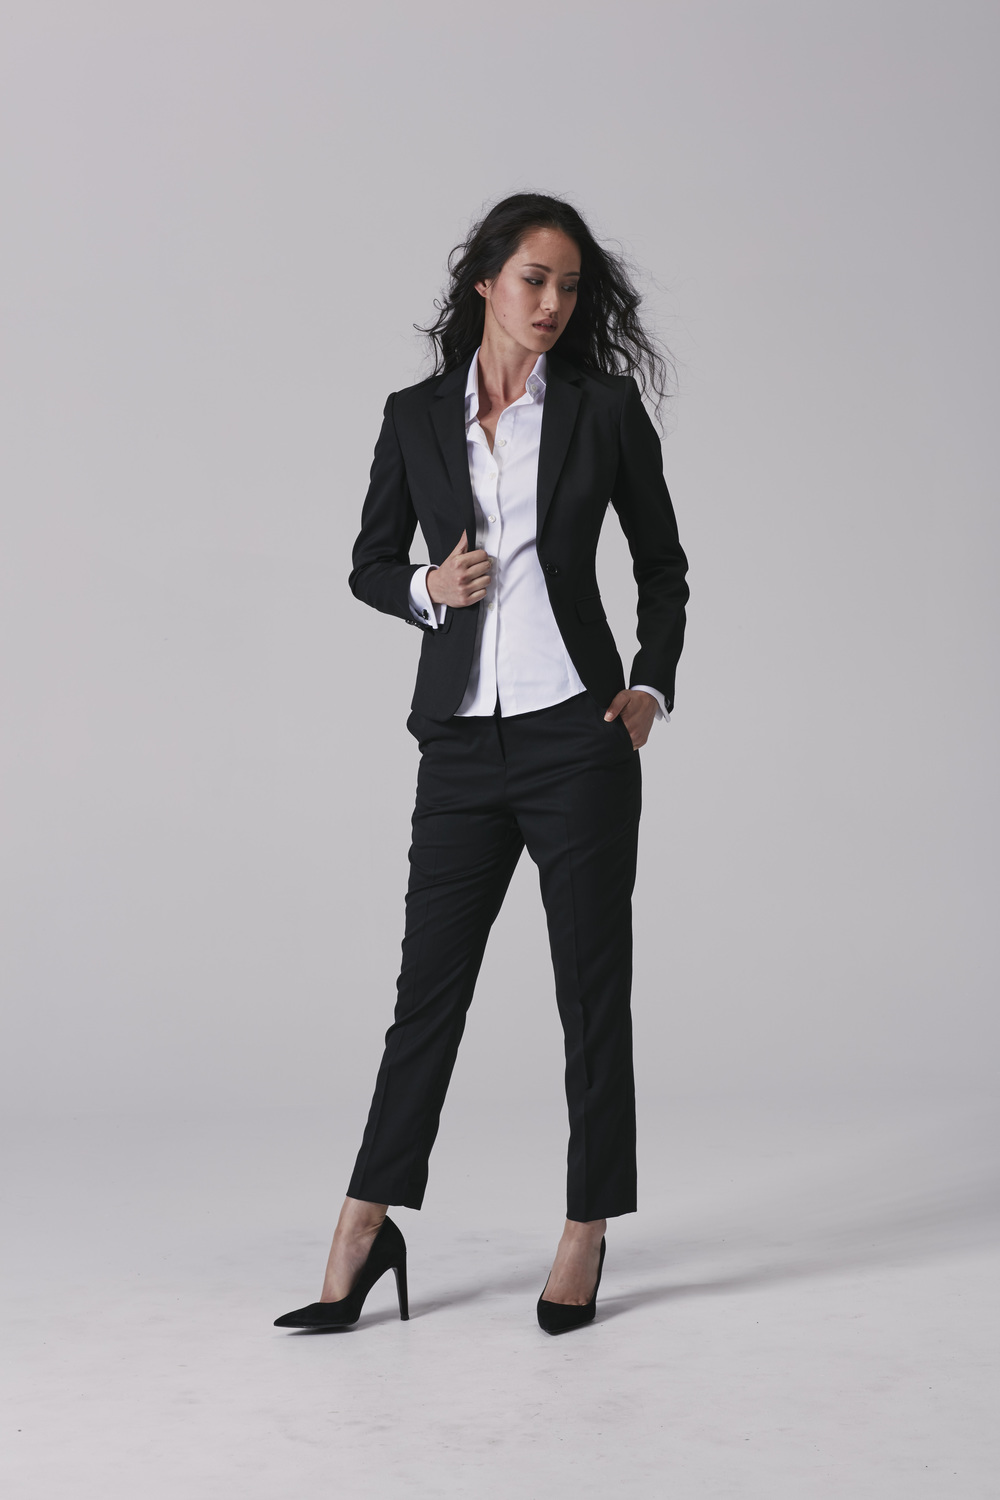 Womens business shirt Womens business pants Womens business jacket.jpg